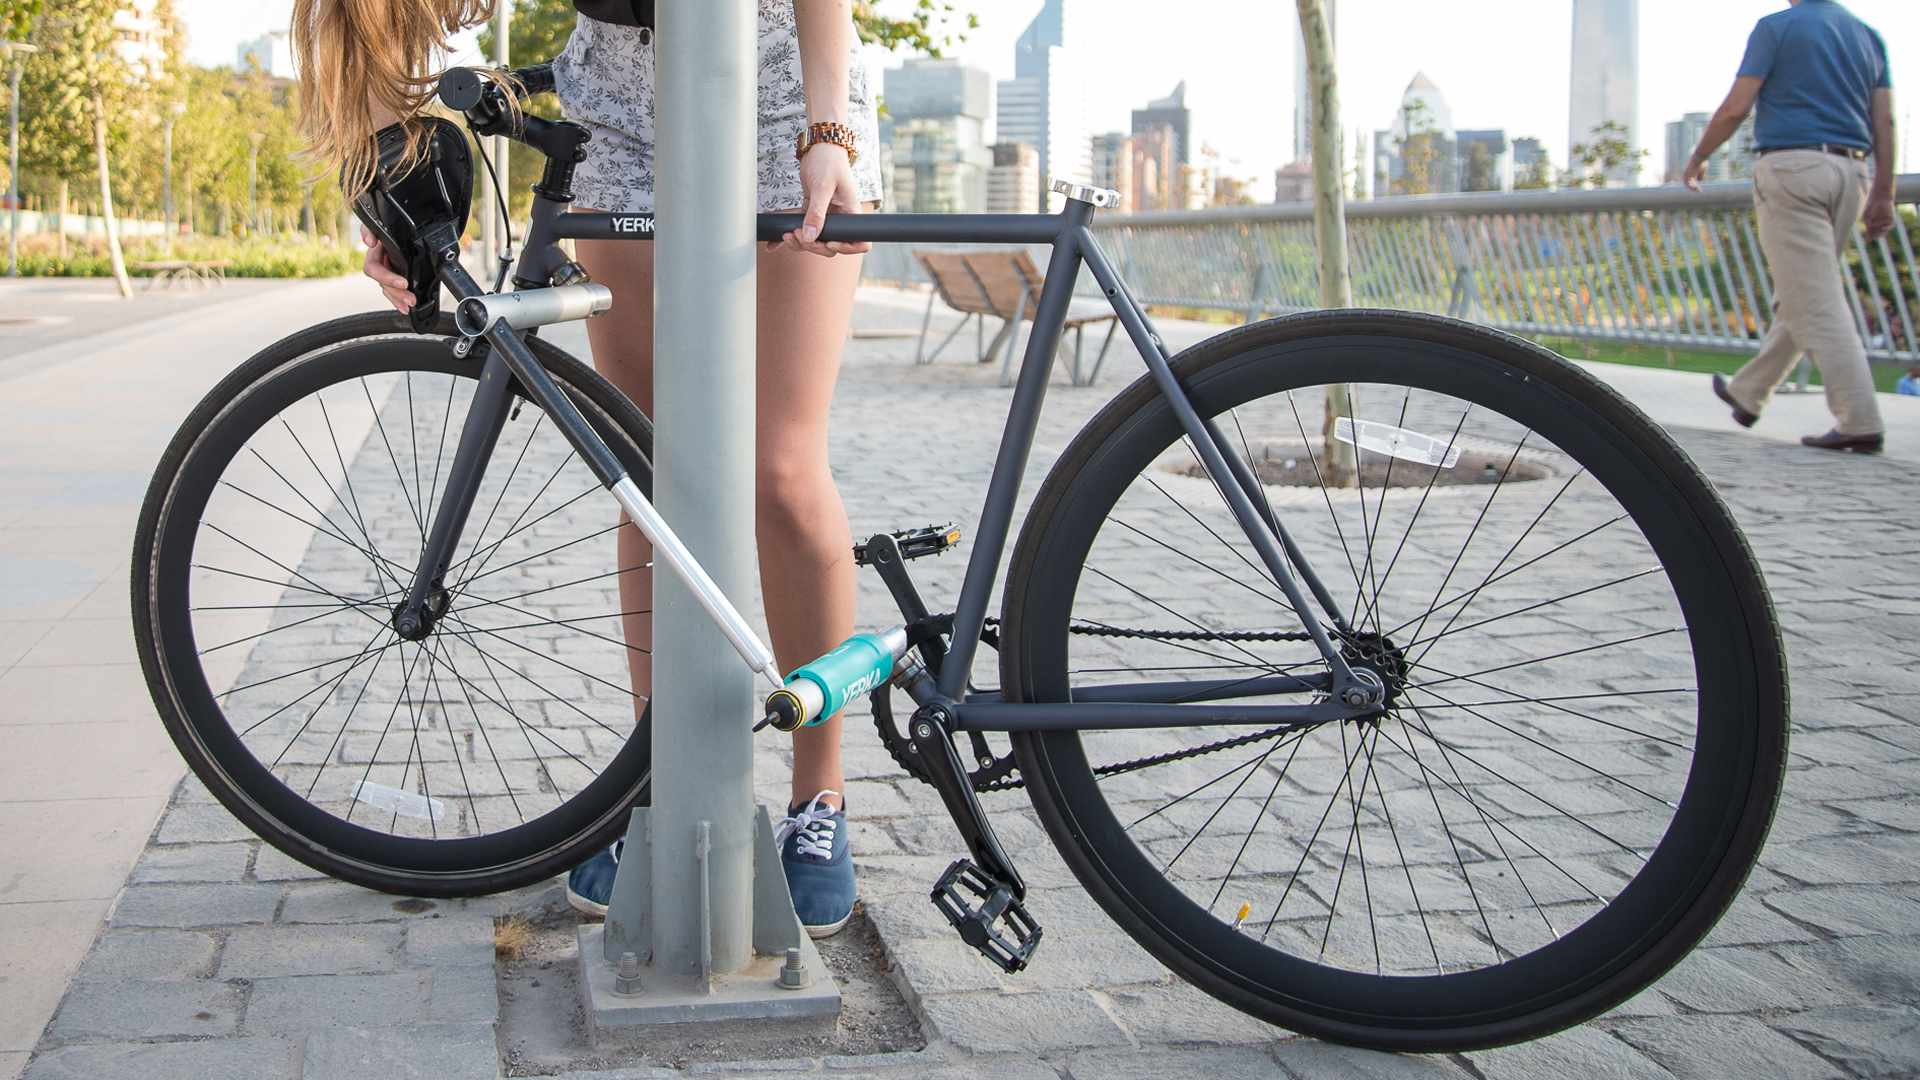 The Yerka's down tube splits in two, folds out and is secured by the seatpost and key-turn lock